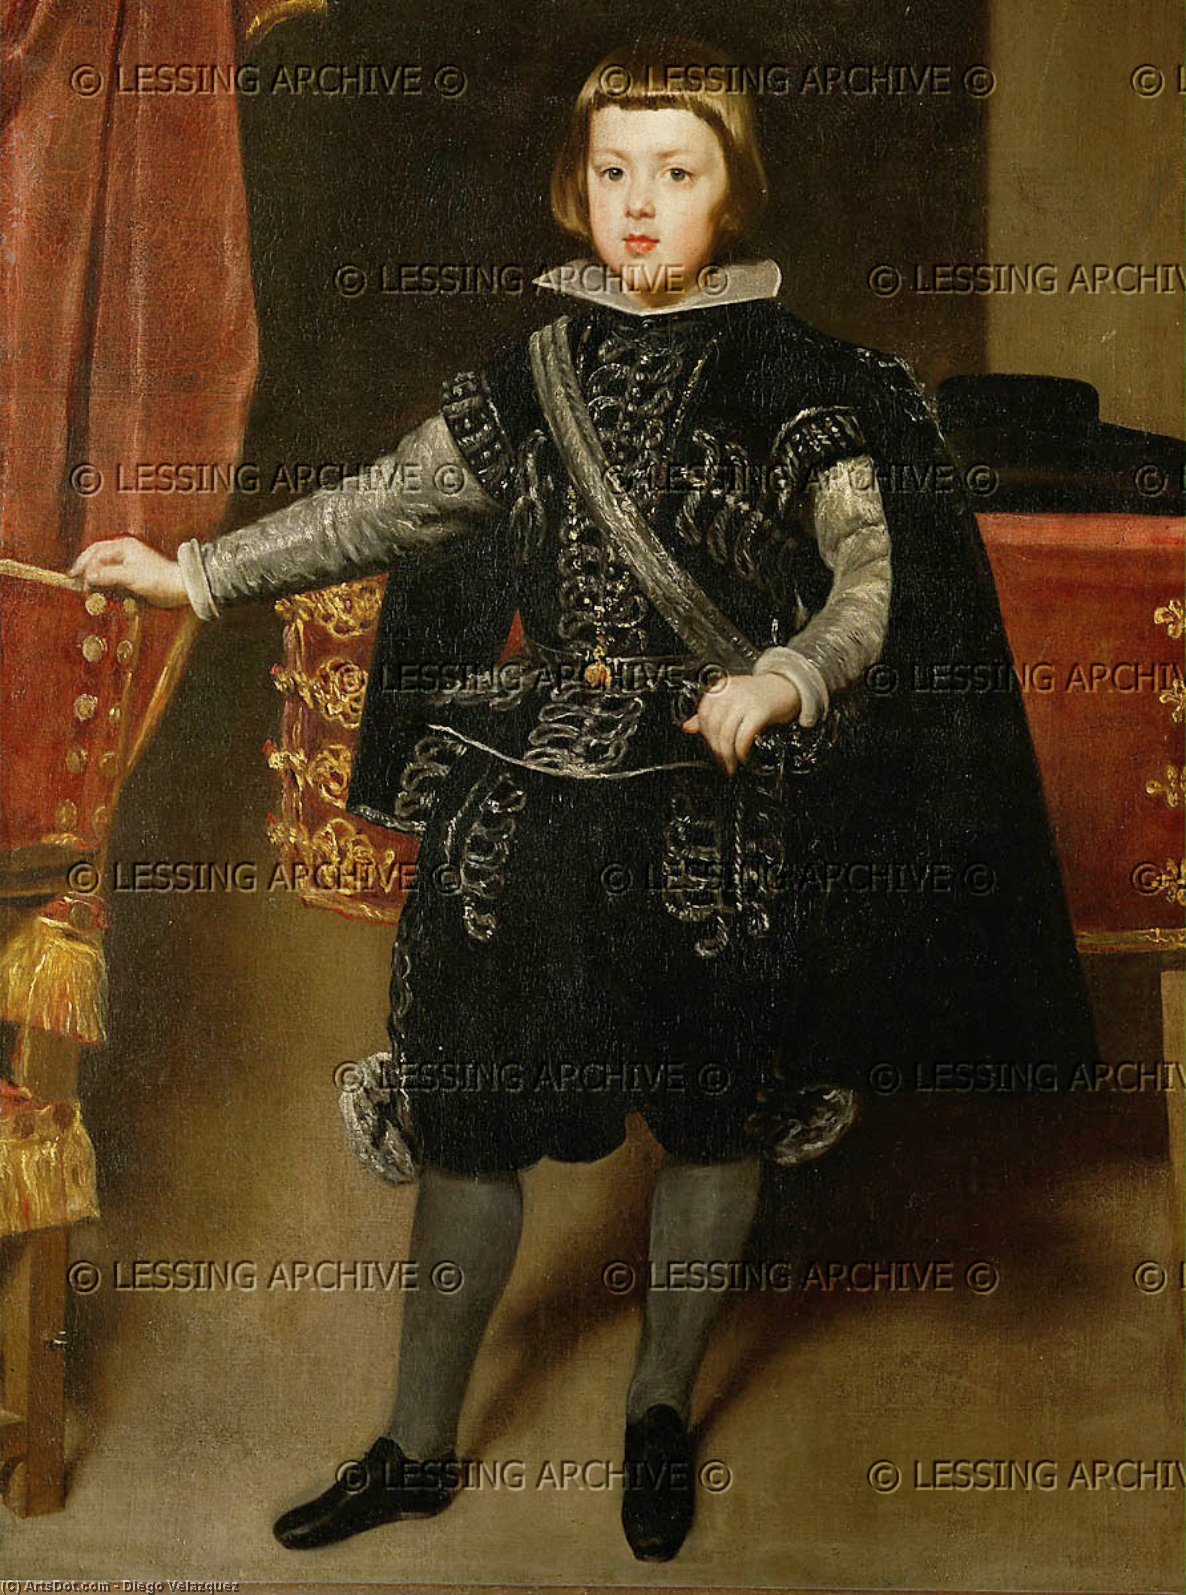 Wikioo.org - The Encyclopedia of Fine Arts - Painting, Artwork by Diego Velazquez - Prince Balthasar Carlos